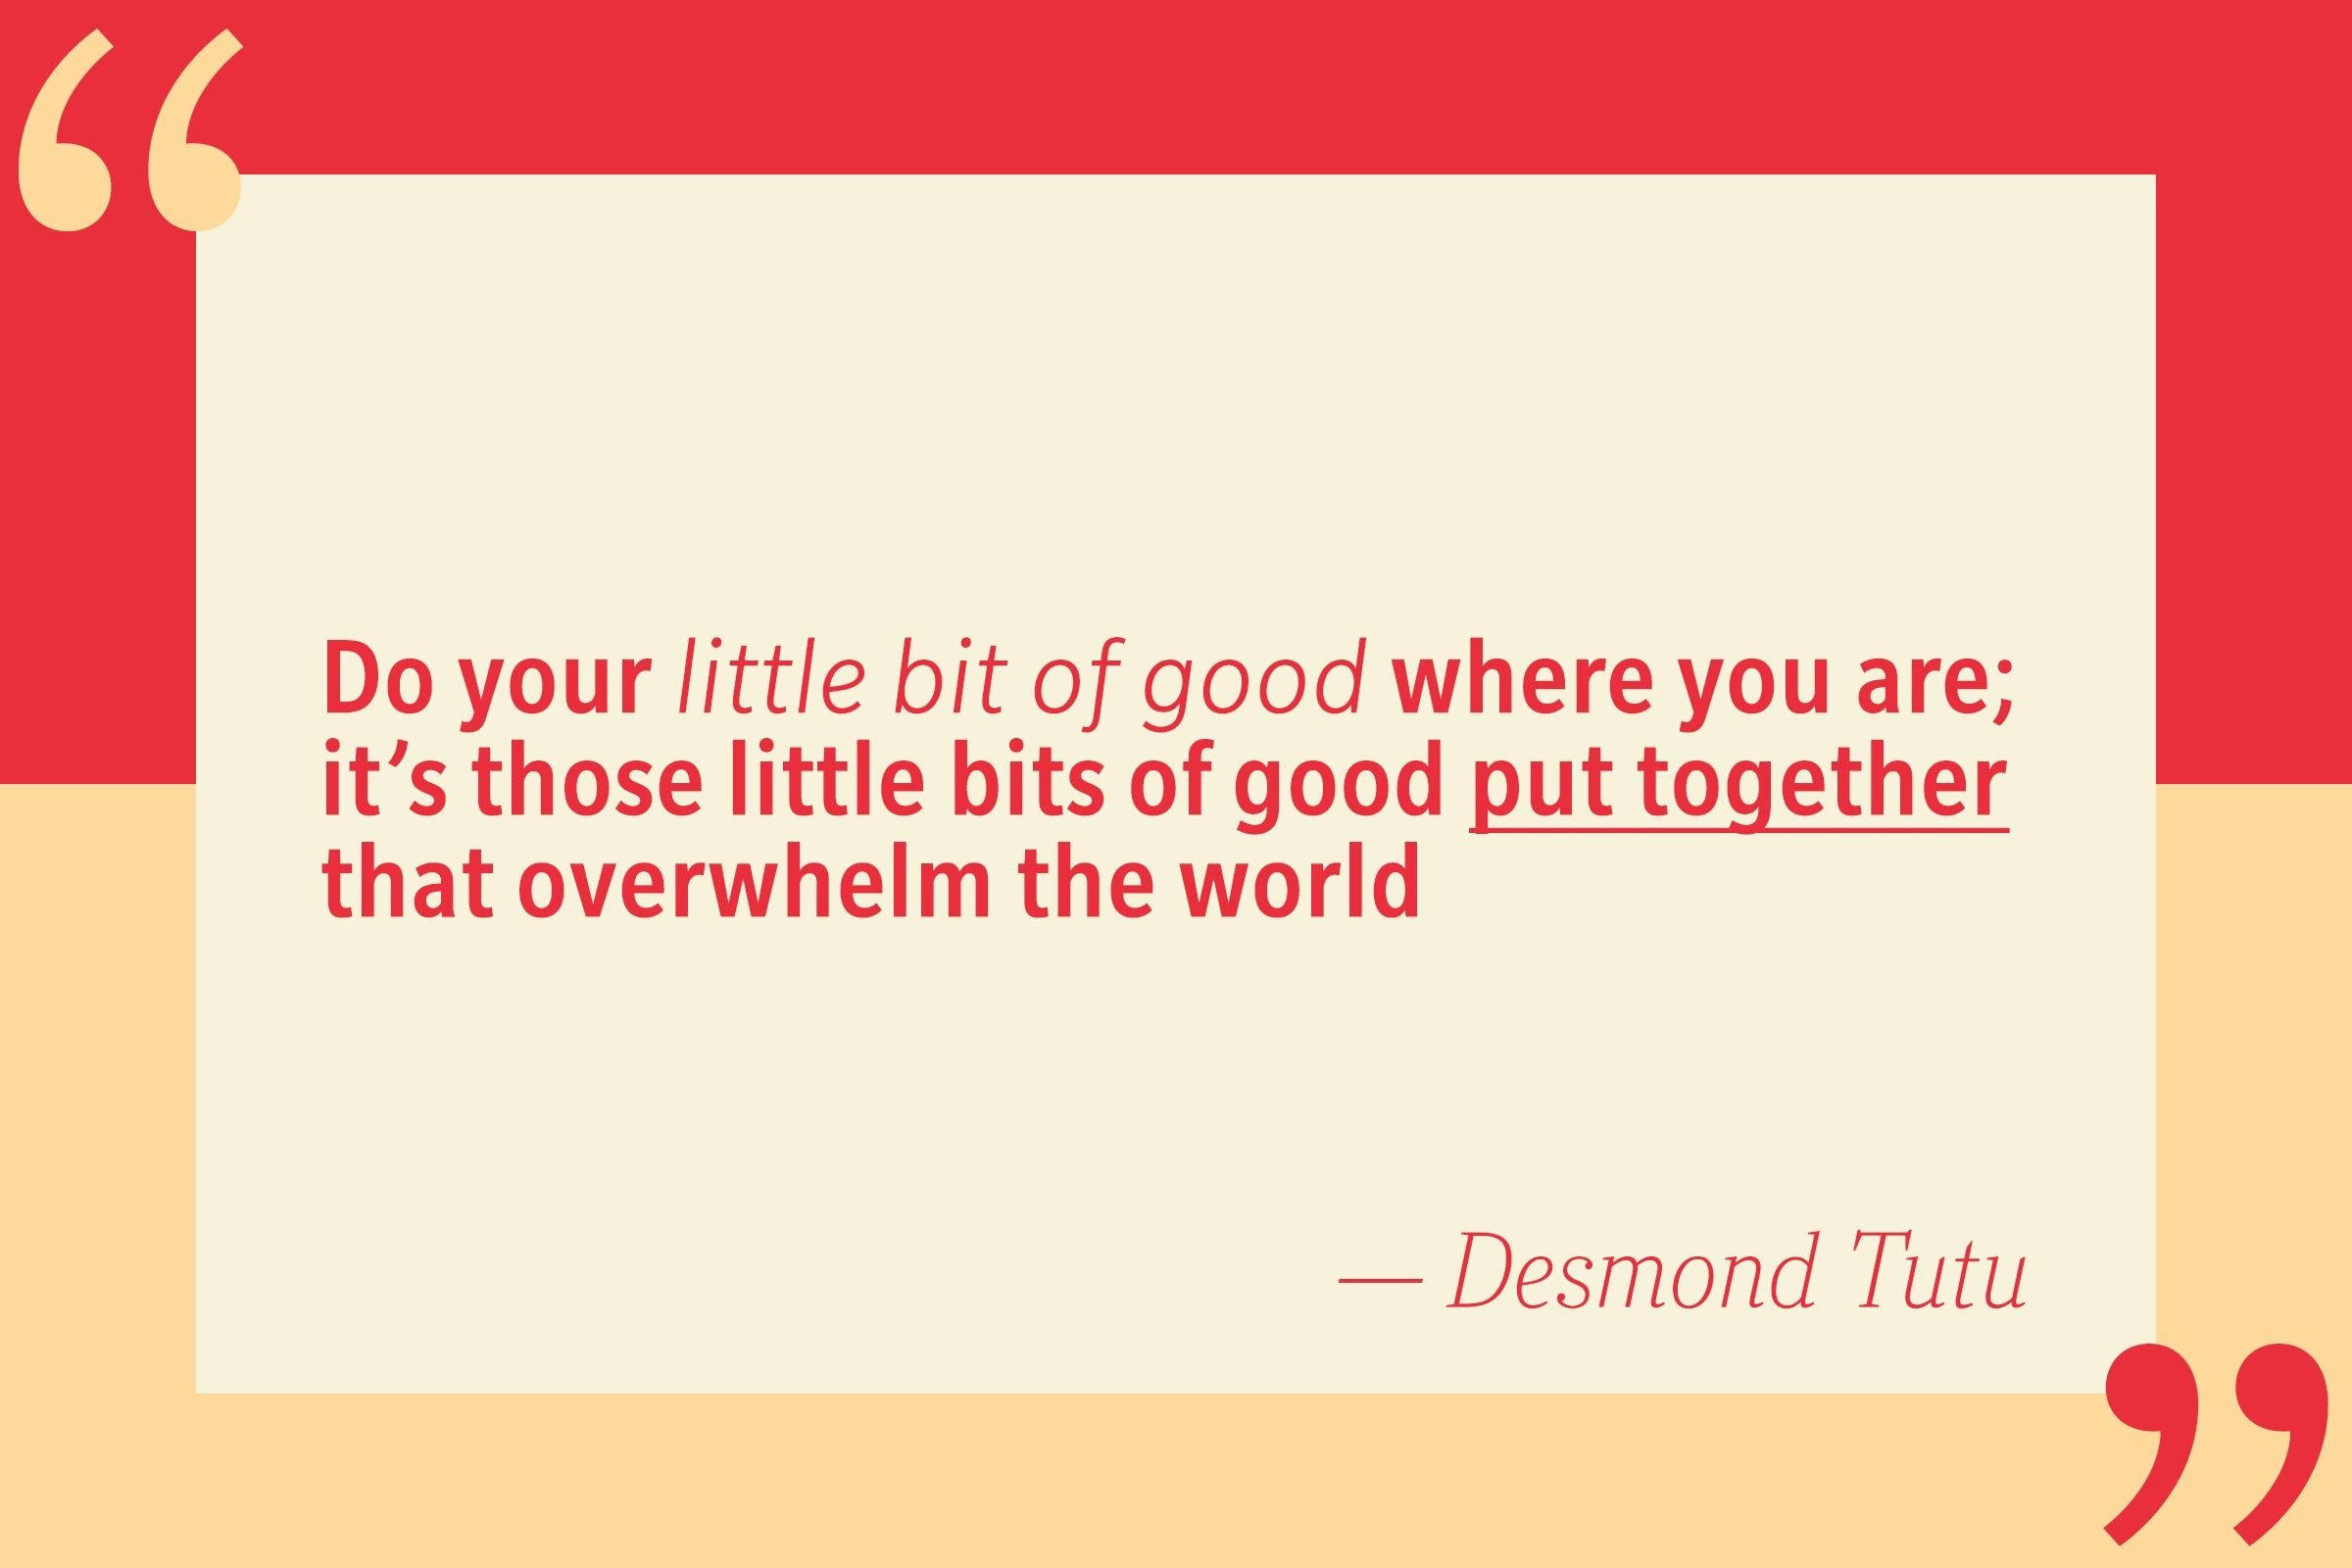 Do your little bit of good where you are; it's those little bits of good put together that overwhelm the world. — Desmond Tutu